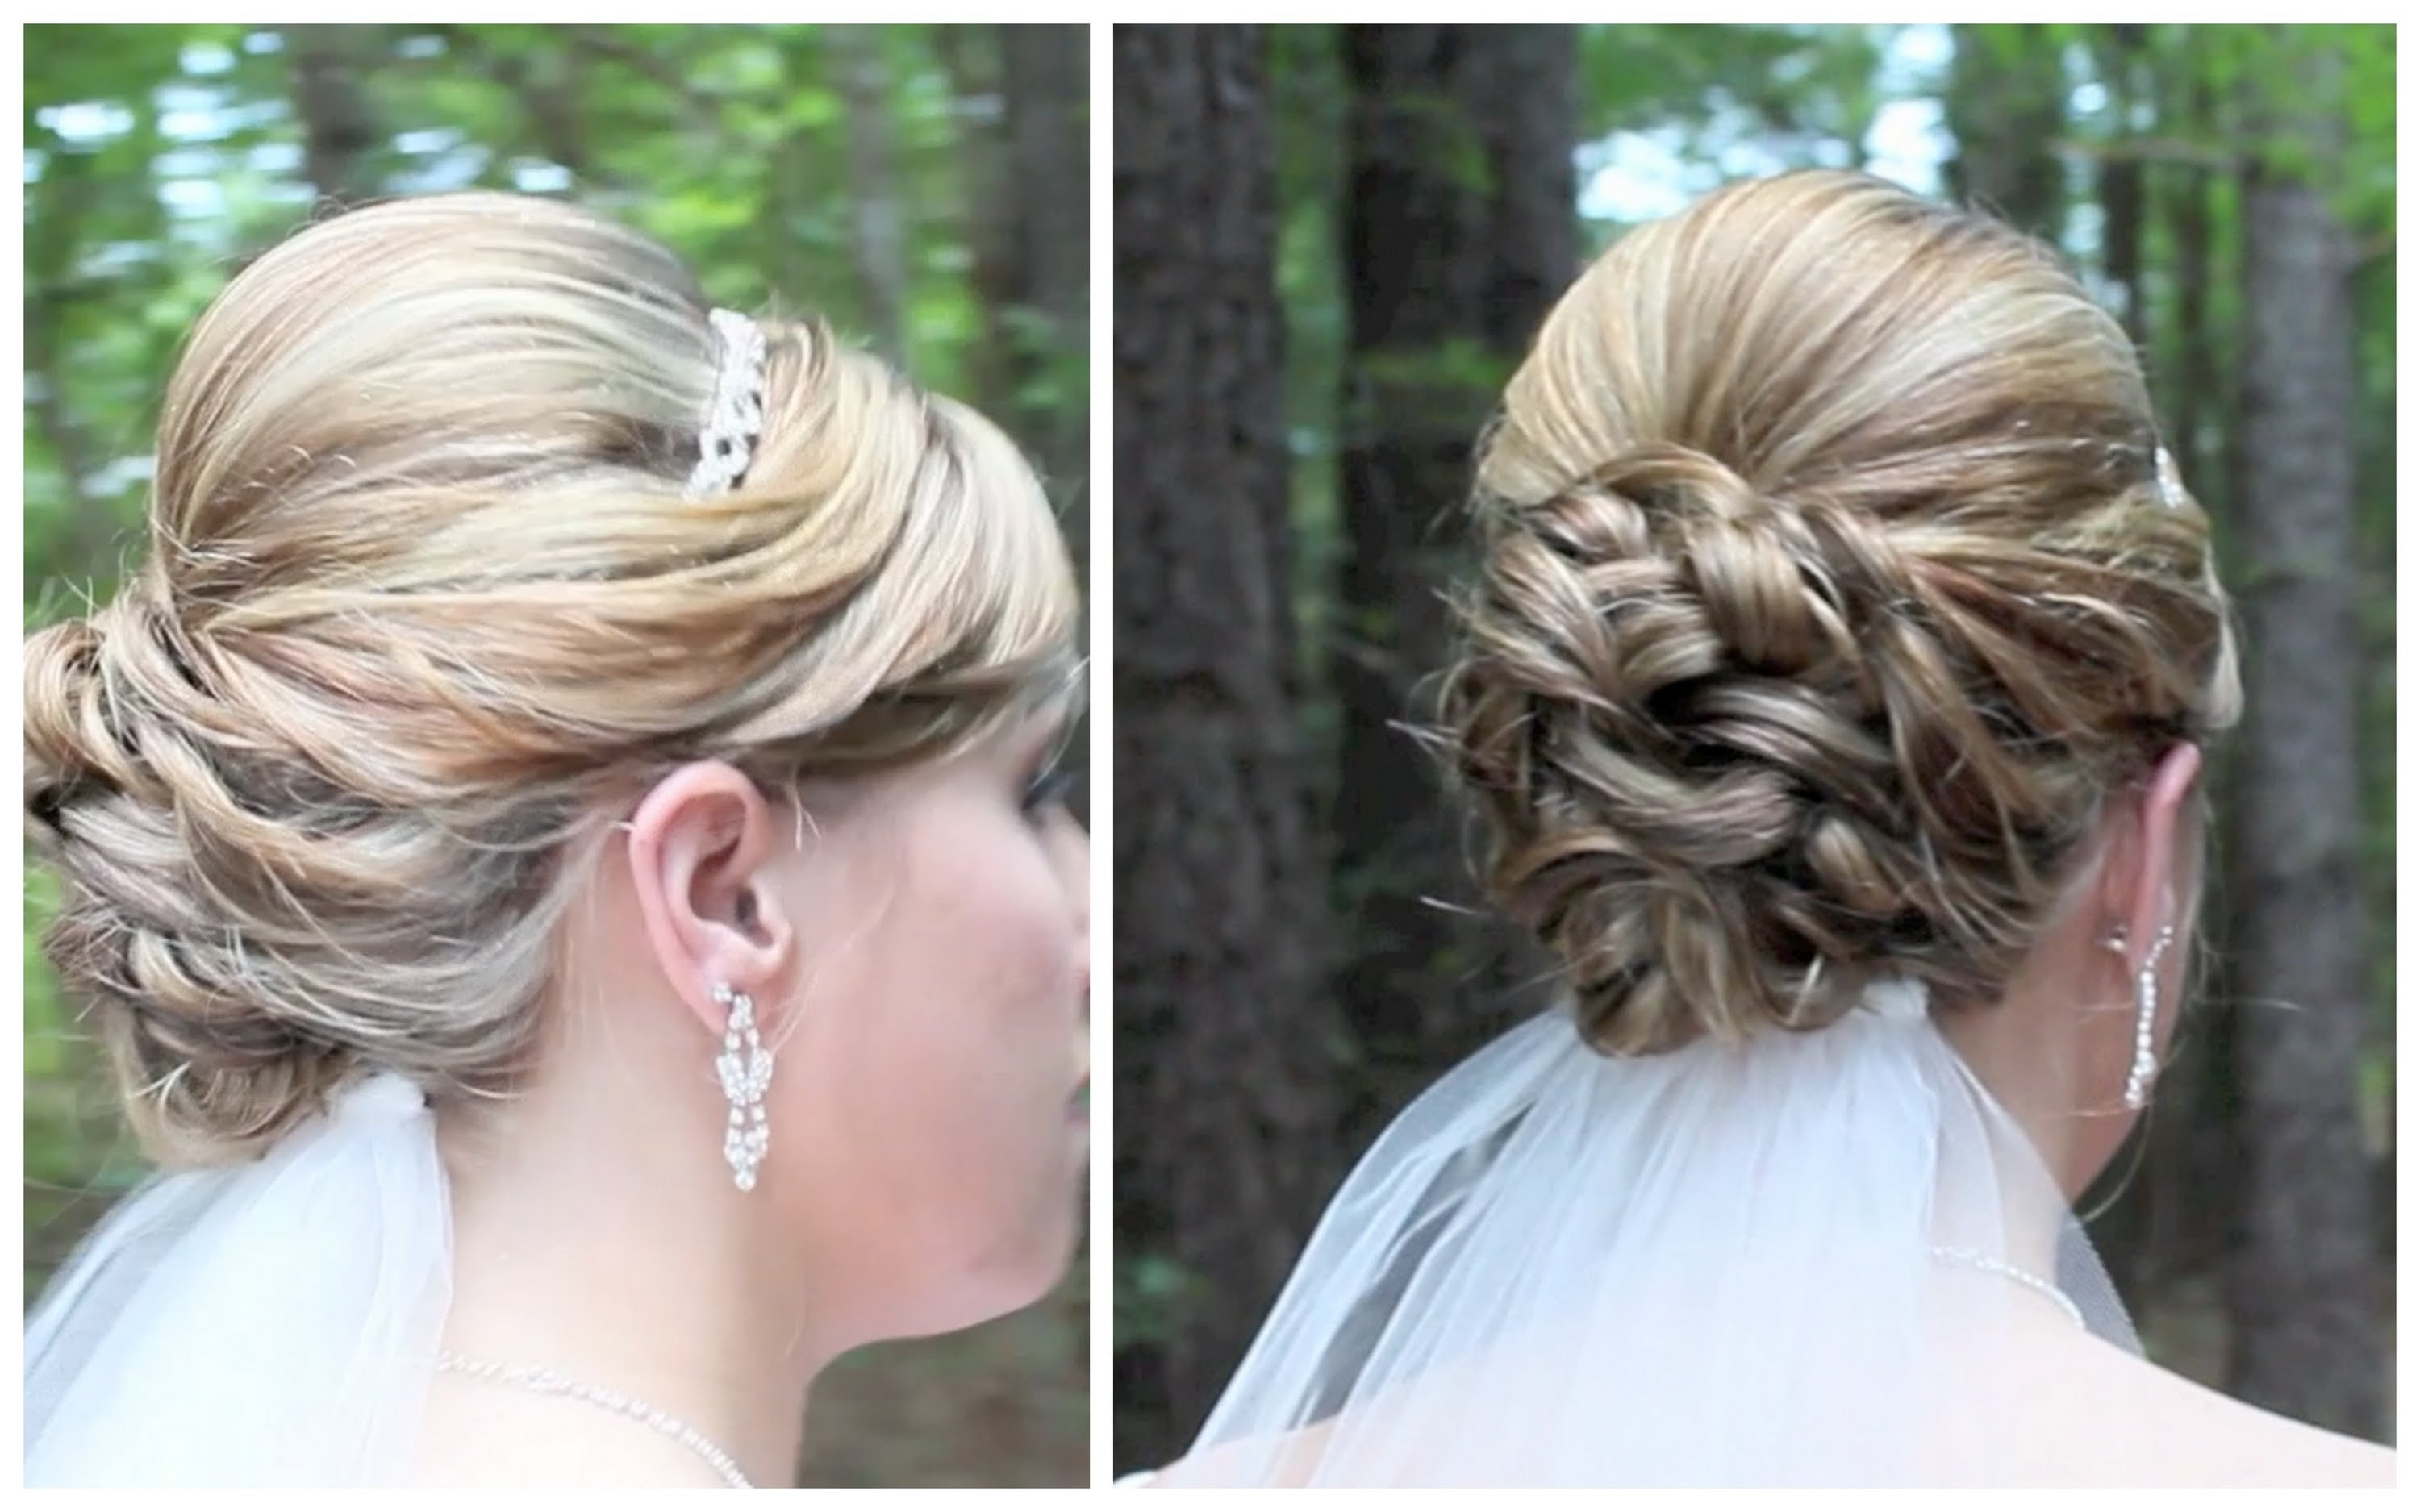 15 Inspirations Of Bridal Updo Hairstyles For Medium Length Hair